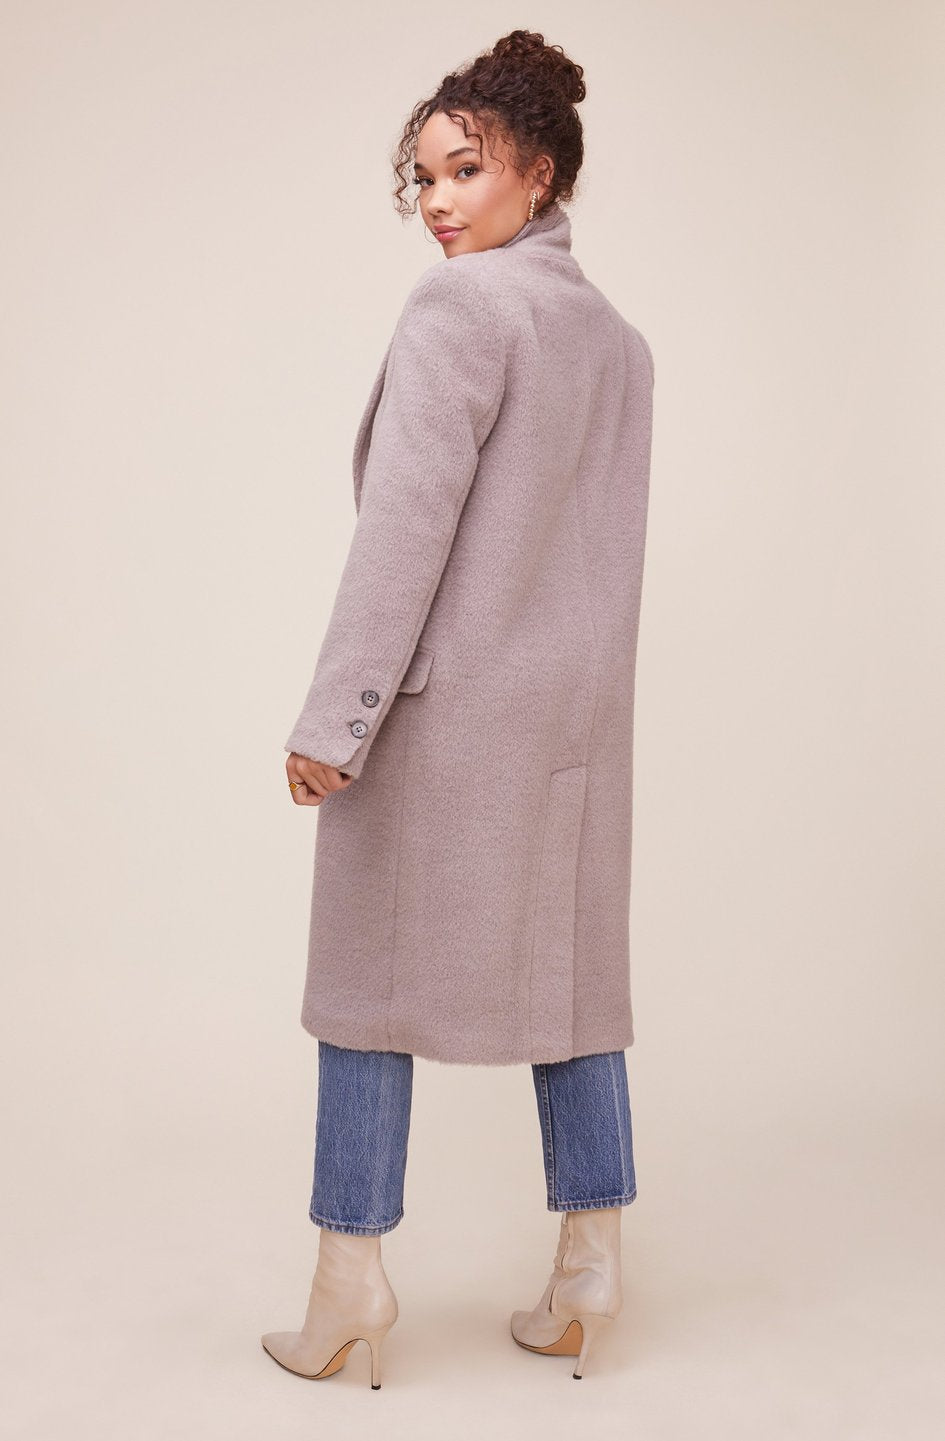 The Blair Coat in Taupe